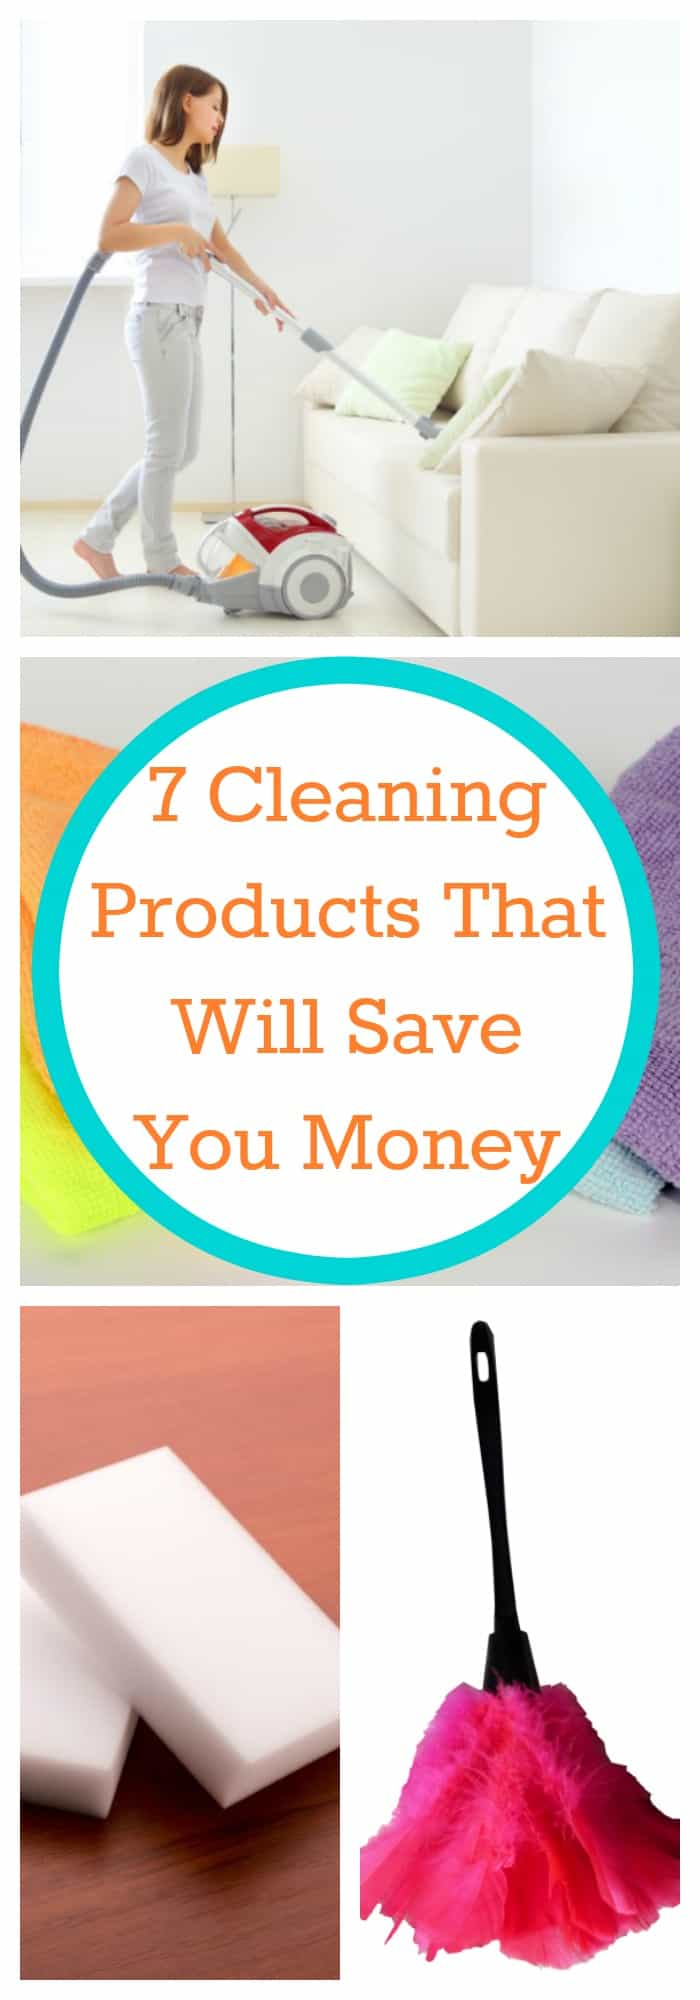 Cleaning--7 Cleaning Products That Will Save You Money--The Organized Mom